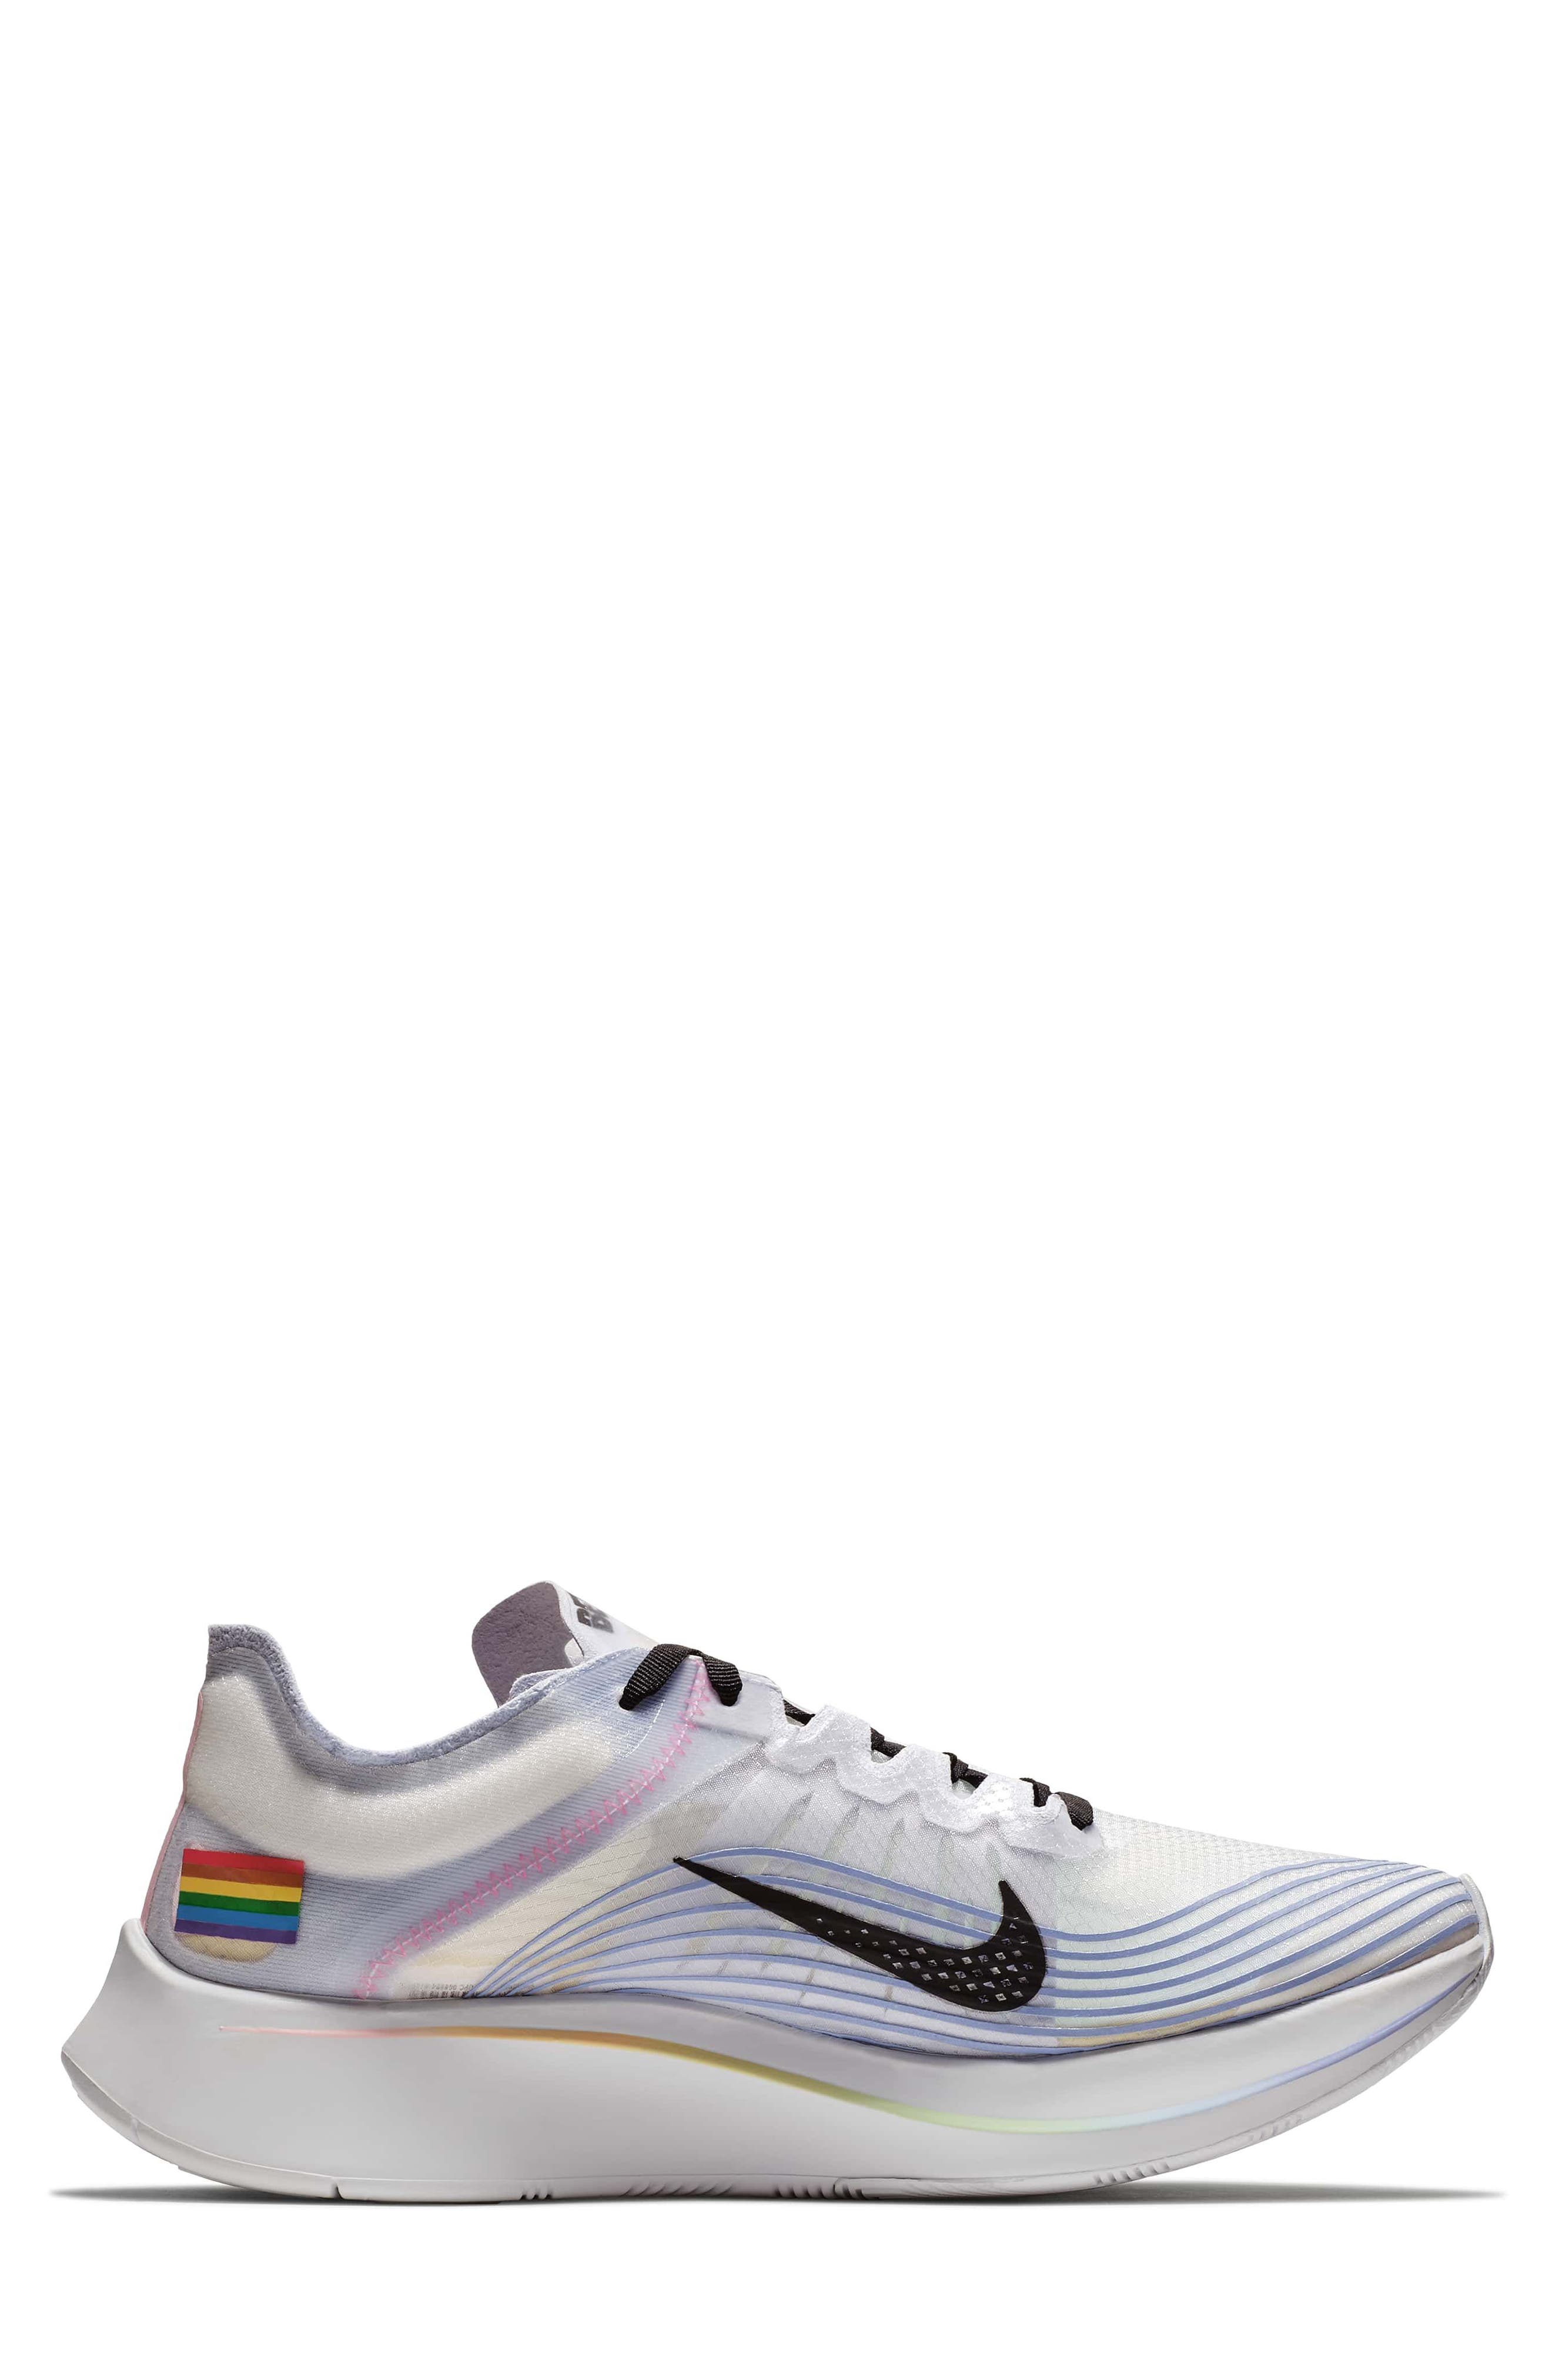 Nordstrom x Nike Zoom Fly BETRUE Running Shoe,                             Alternate thumbnail 9, color,                             105